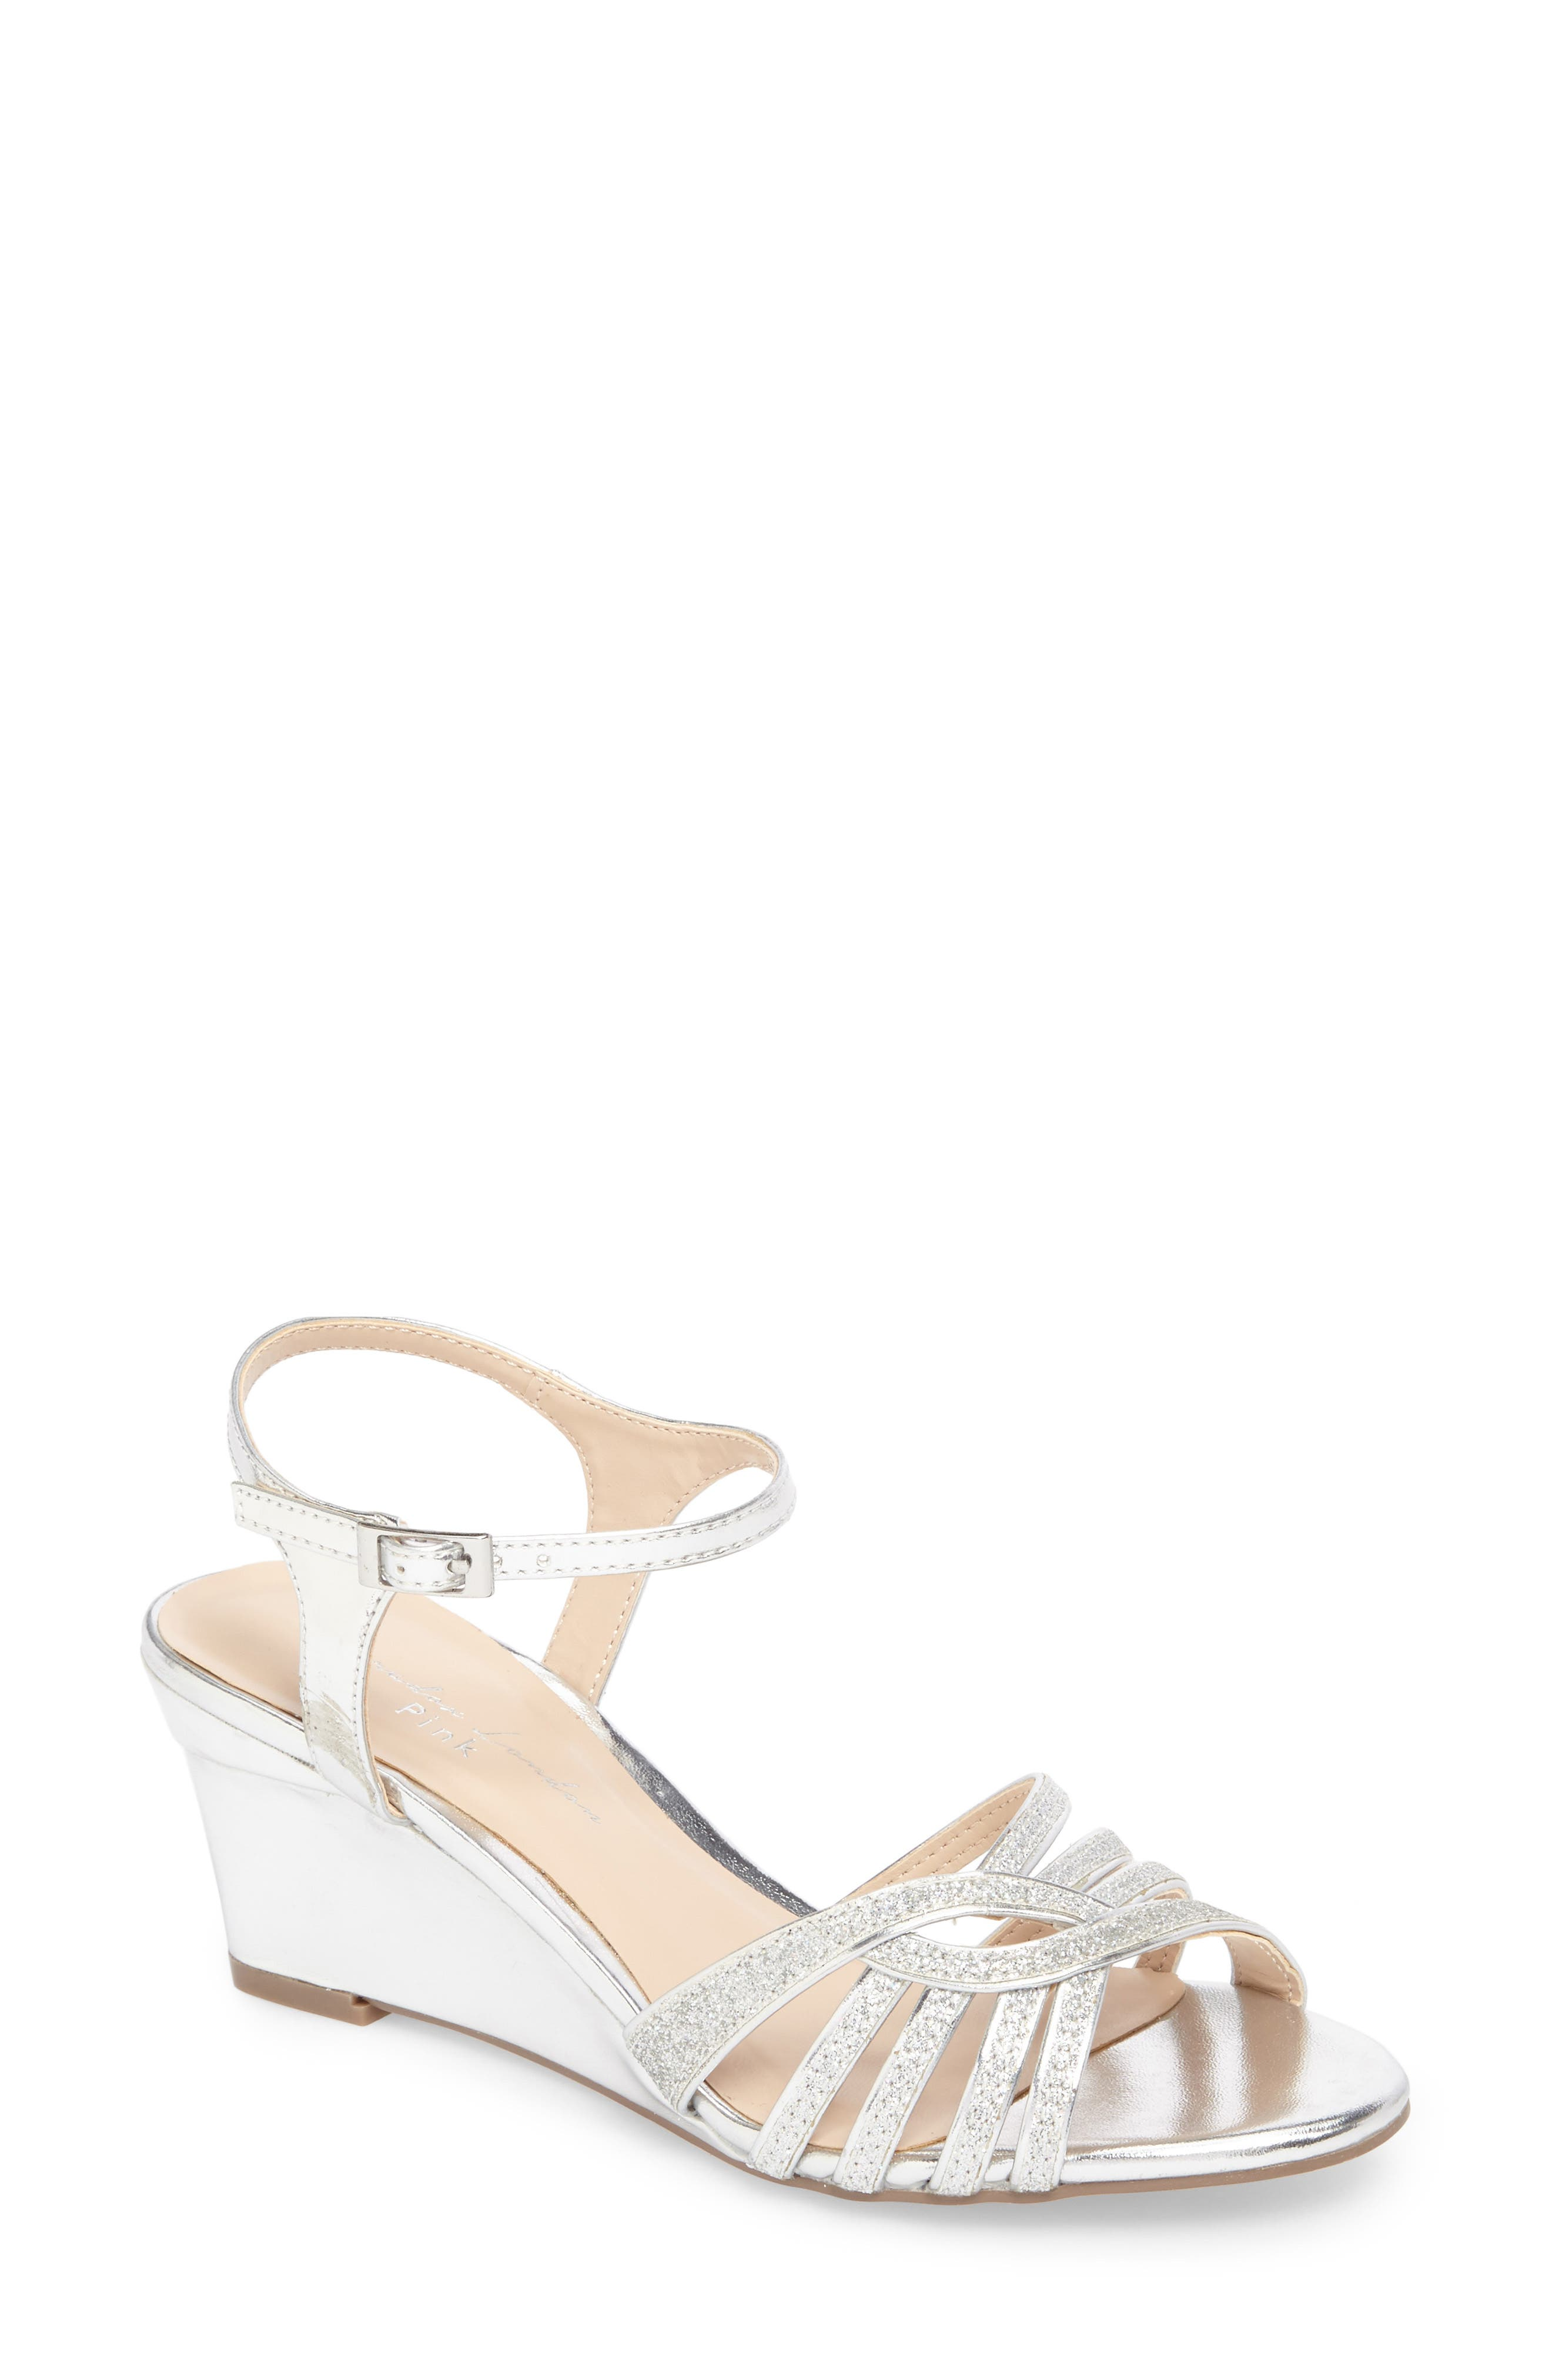 PARADOX LONDON PINK Karianne Wedge Sandal, Main, color, 040